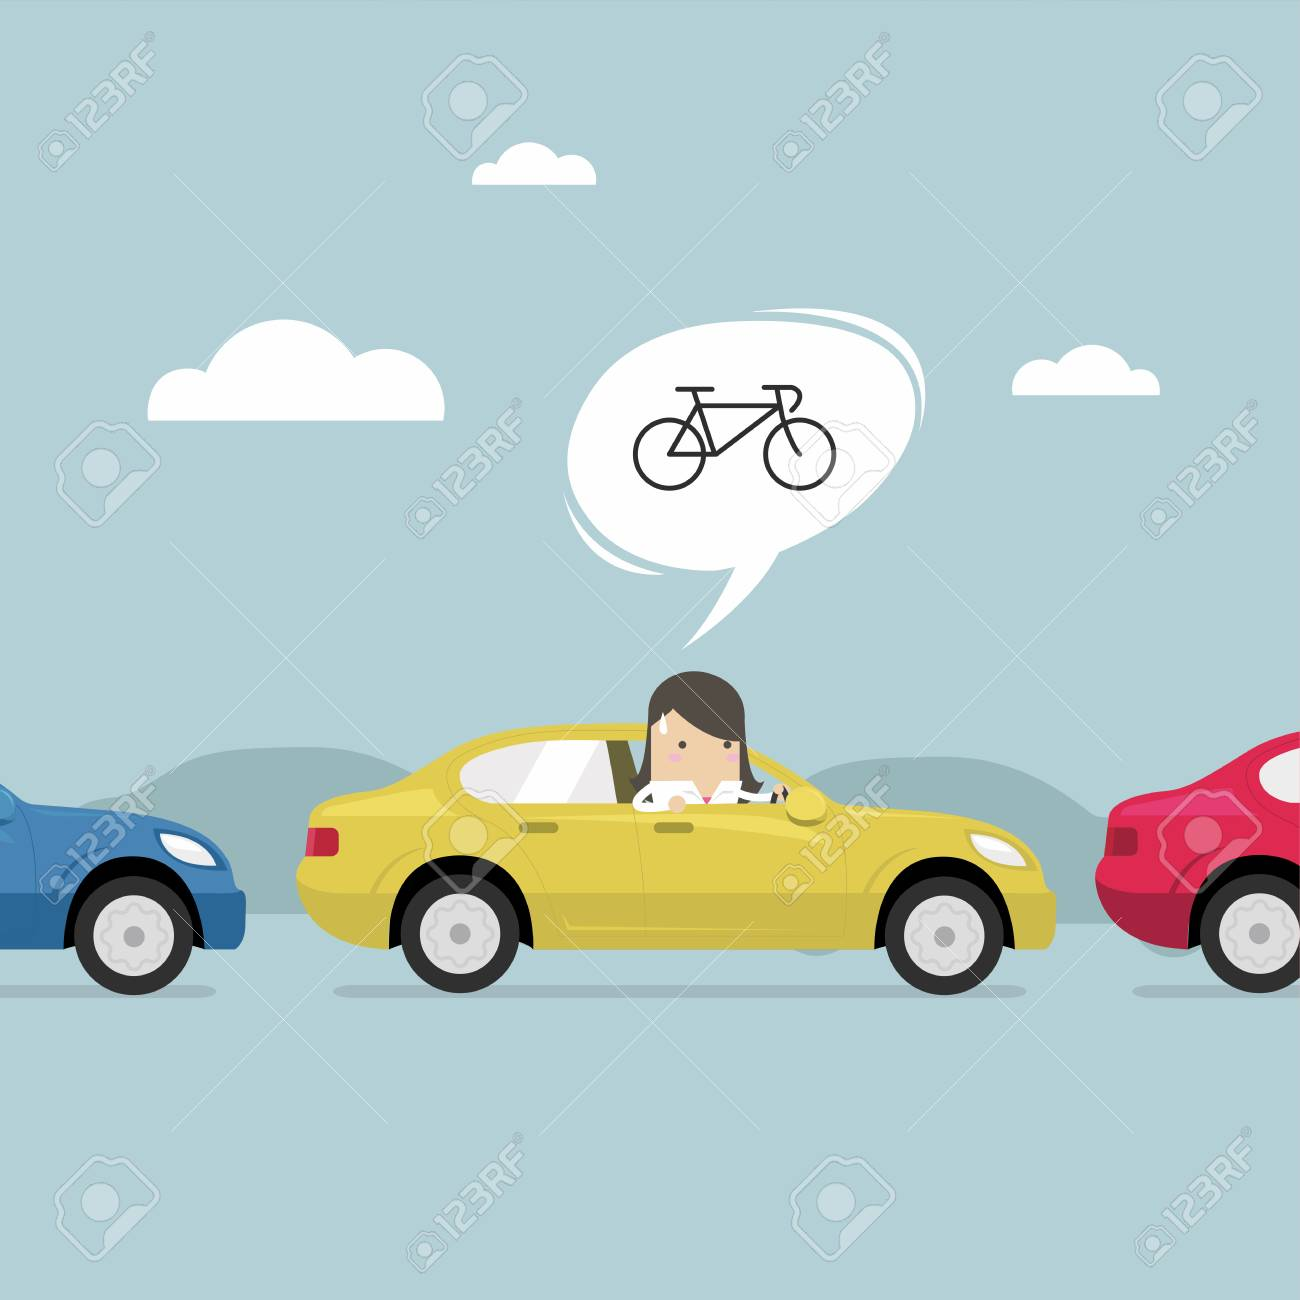 car or bike which is better